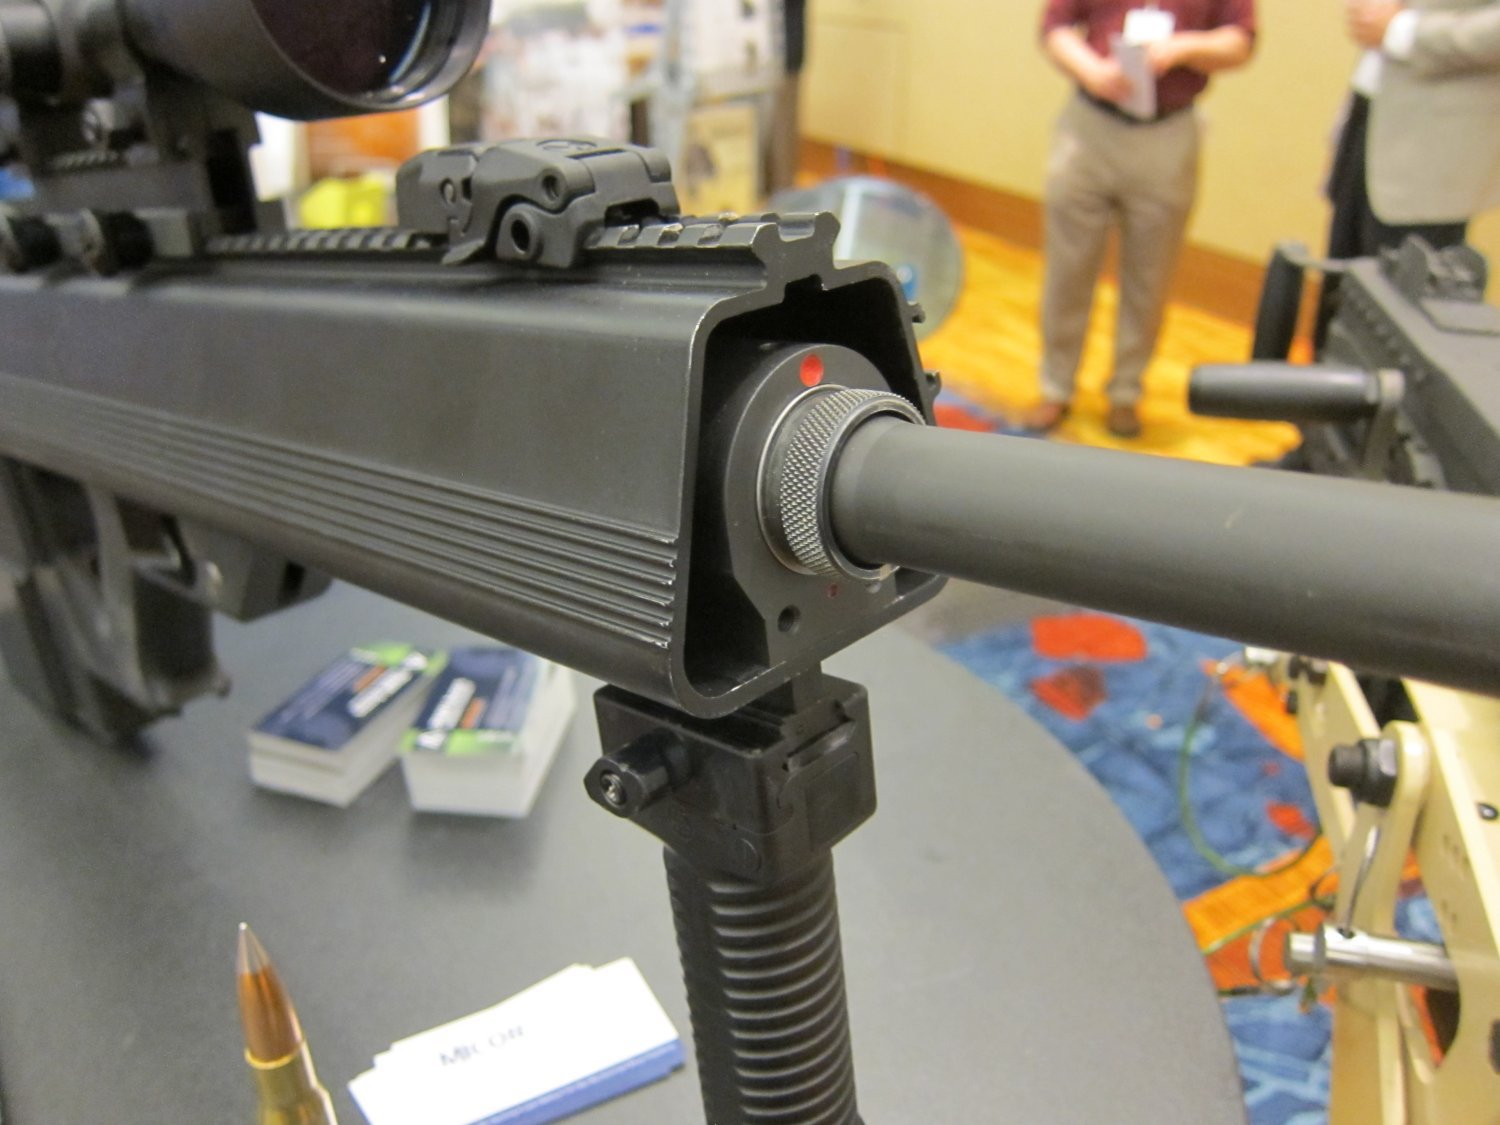 Micor Leader 50 Lightweight Bullpup Semi Auto .50 BMG Sniper Anti Materiel Rifle NDIA Small Arms Symposium 2011 DefenseReview.com DR 1 <!  :en  >MICOR Defense Leader 50 Ultra Compact, Lightweight Bullpup Semi Auto .50 BMG (12.7x99mm NATO) Sniper/Anti Materiel Rifle and PNW Arms Weapons Science .50BMG Ammo at NDIA Infantry Small Arms Systems Symposium 2011: Potential Long Range Lethality Game Changer Combo for 21st Century Infantry Warfare (Photos and Video!)<!  :  >